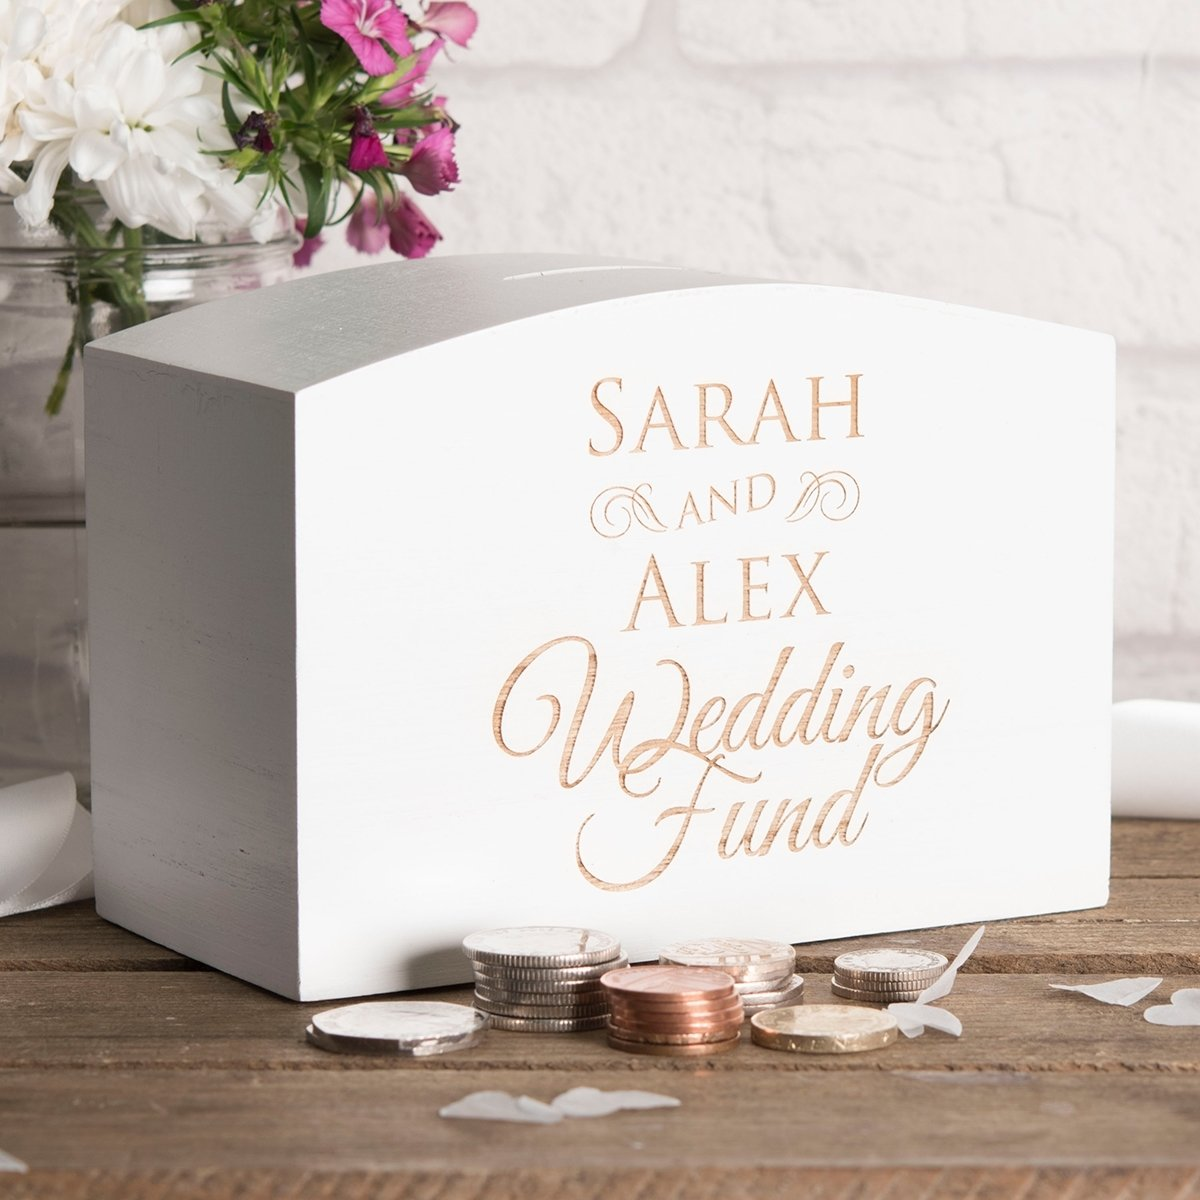 10 Stylish Engagement Gift Ideas For Couples engagement gifts present ideas gettingpersonal co uk 4 2020